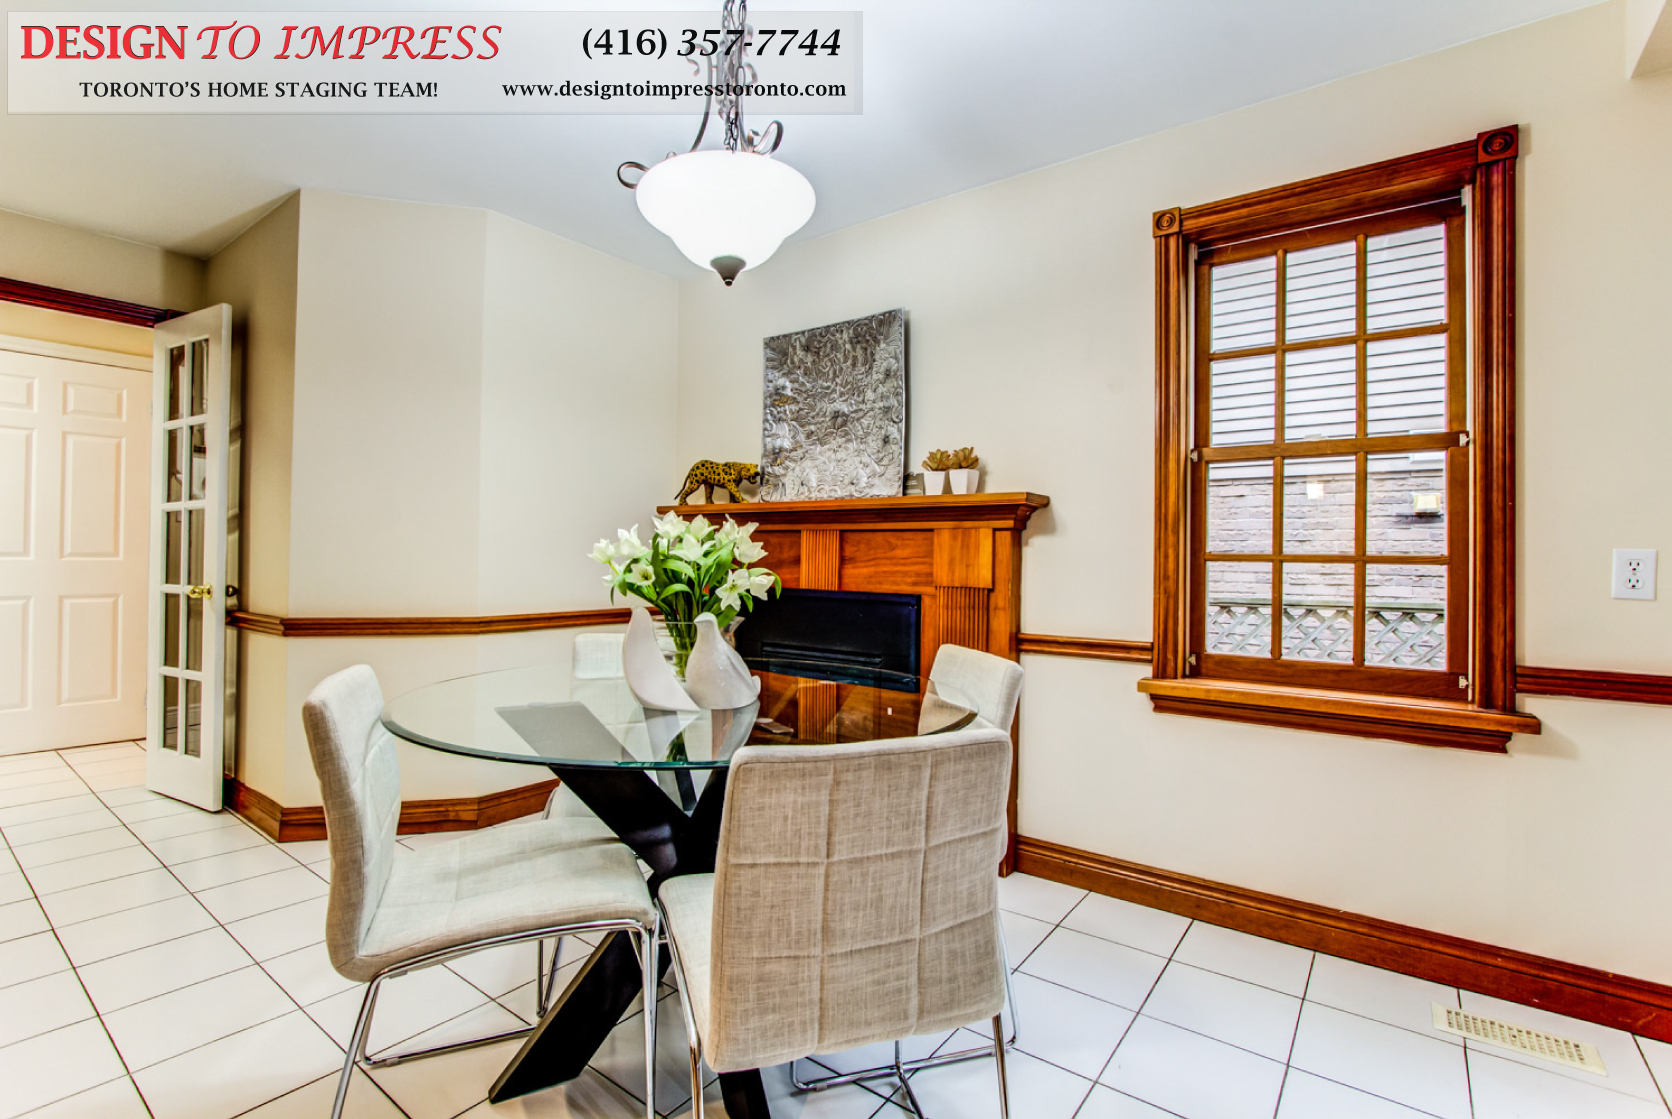 Eat-in Kitchen Fireplace, 133 Huntington Park, Thornhill Home Staging